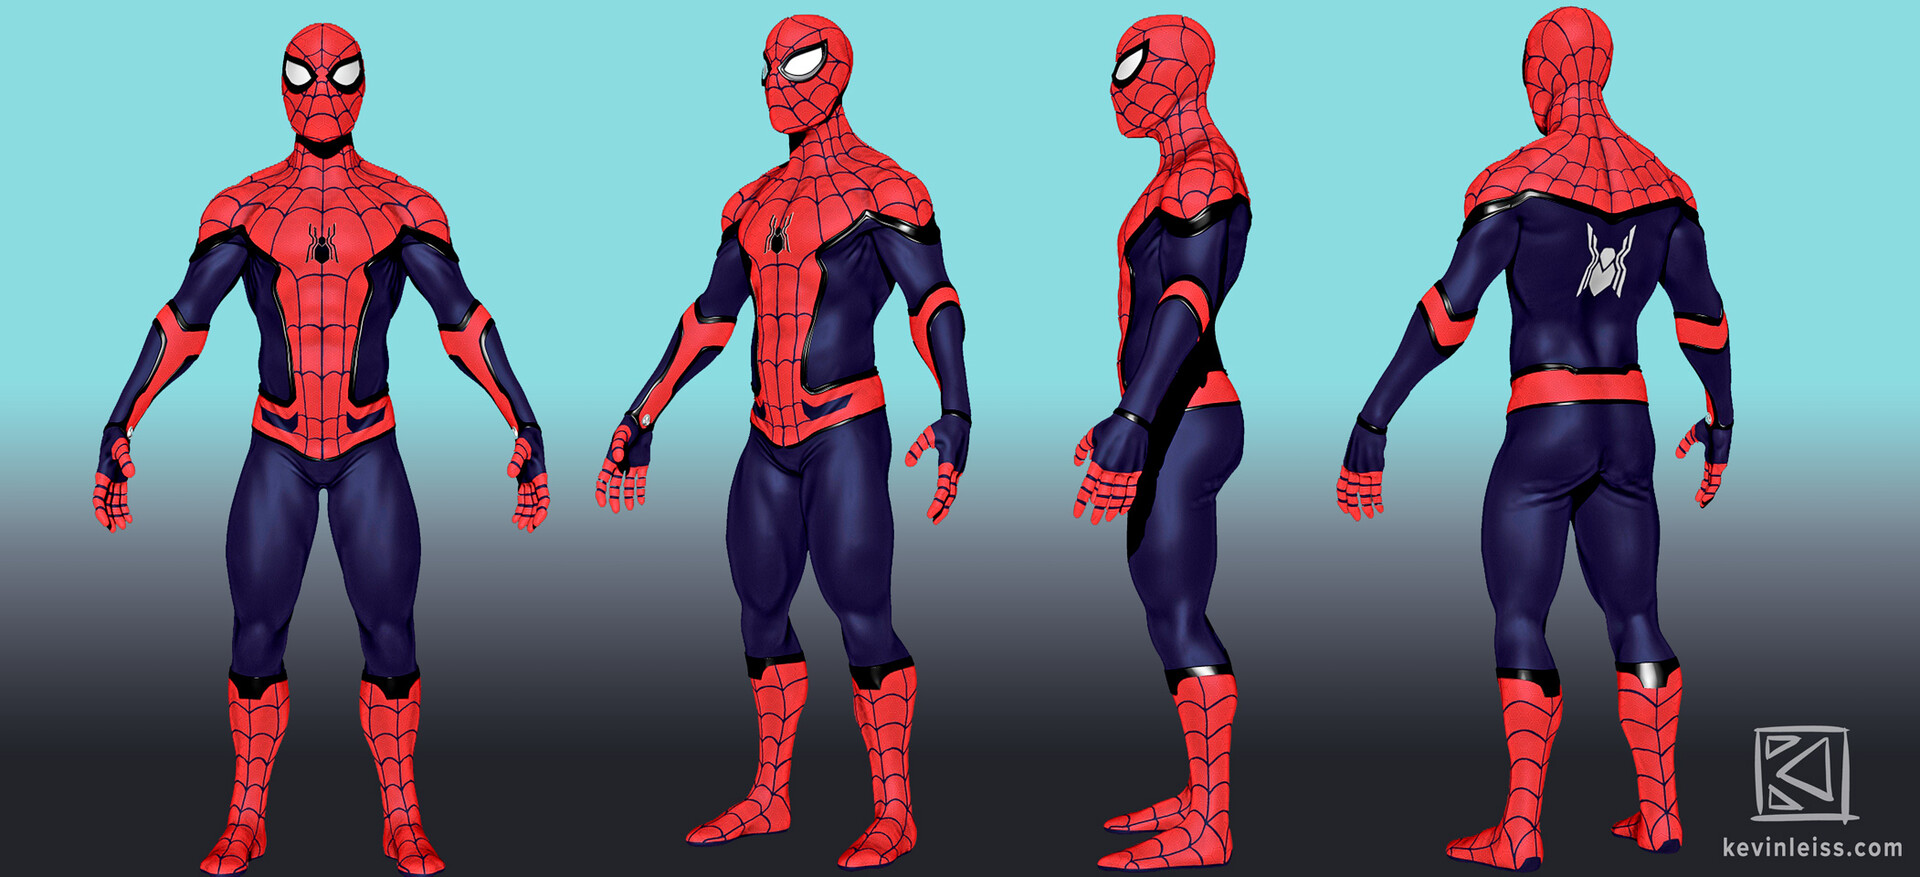 The 3D-Model of Spider-Man.